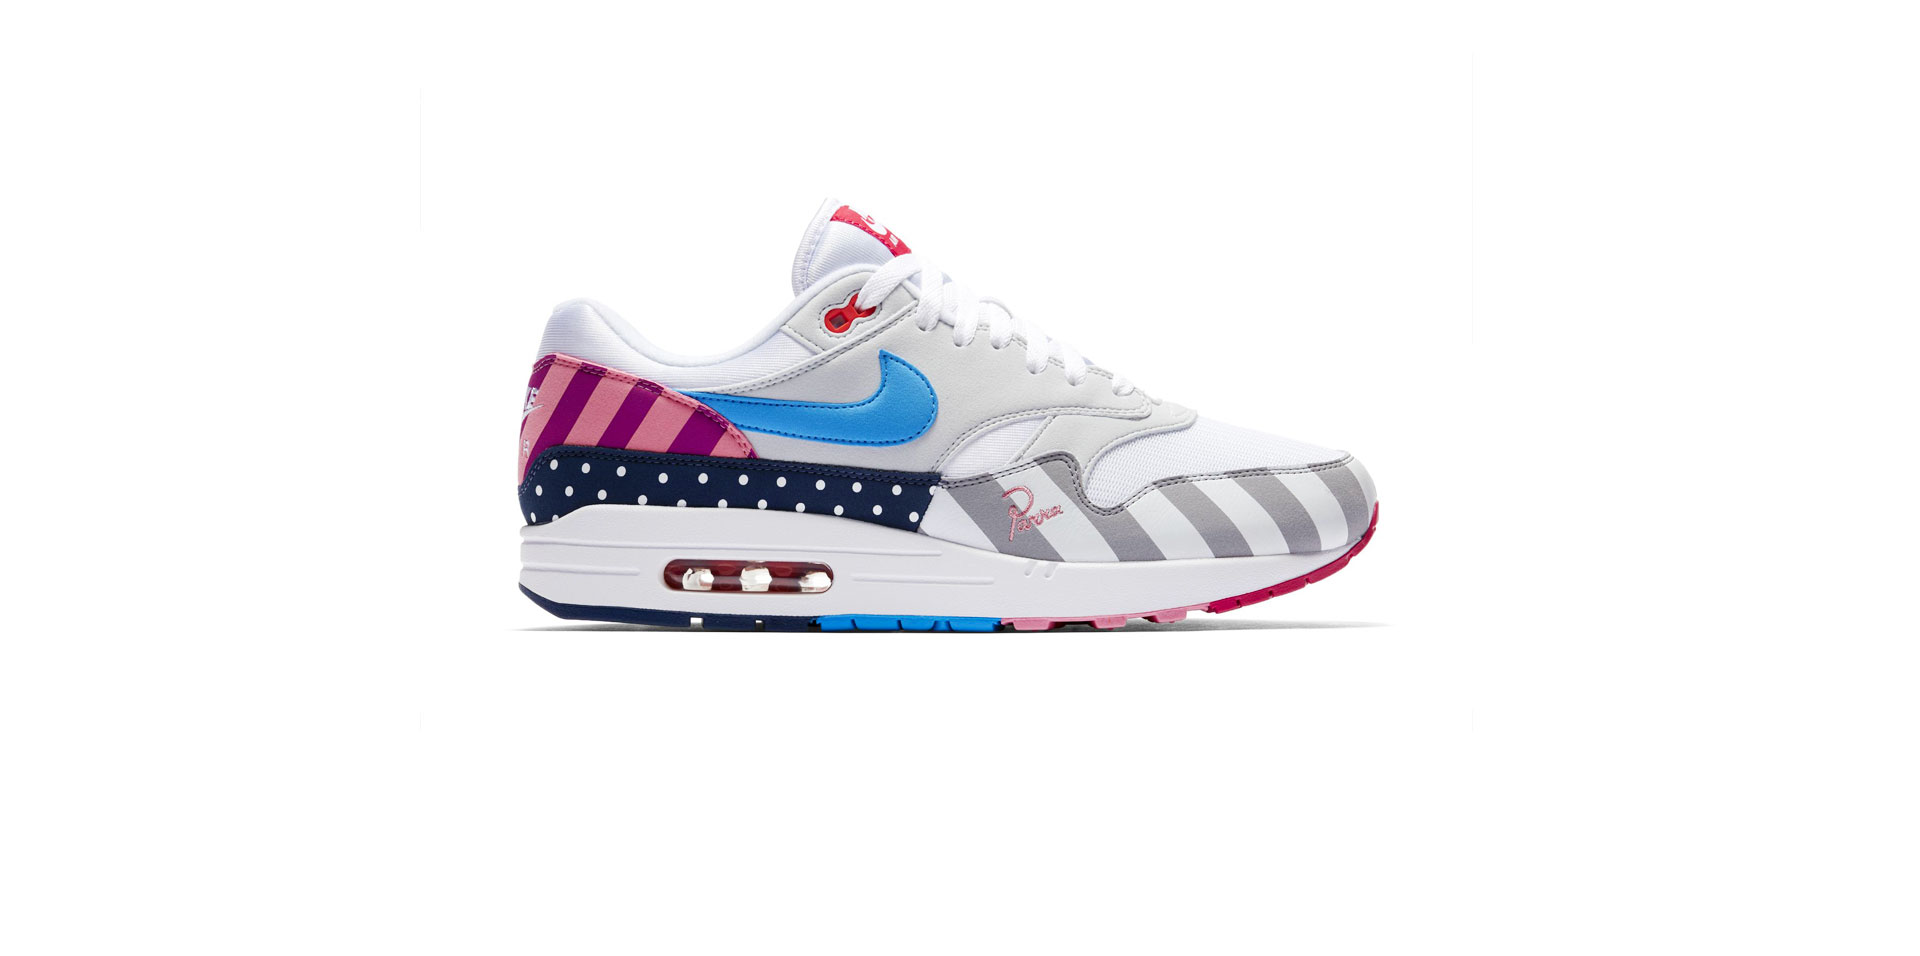 NIKE AIR MAX 1 X PARRA – WHITE/MULTI-COLOUR